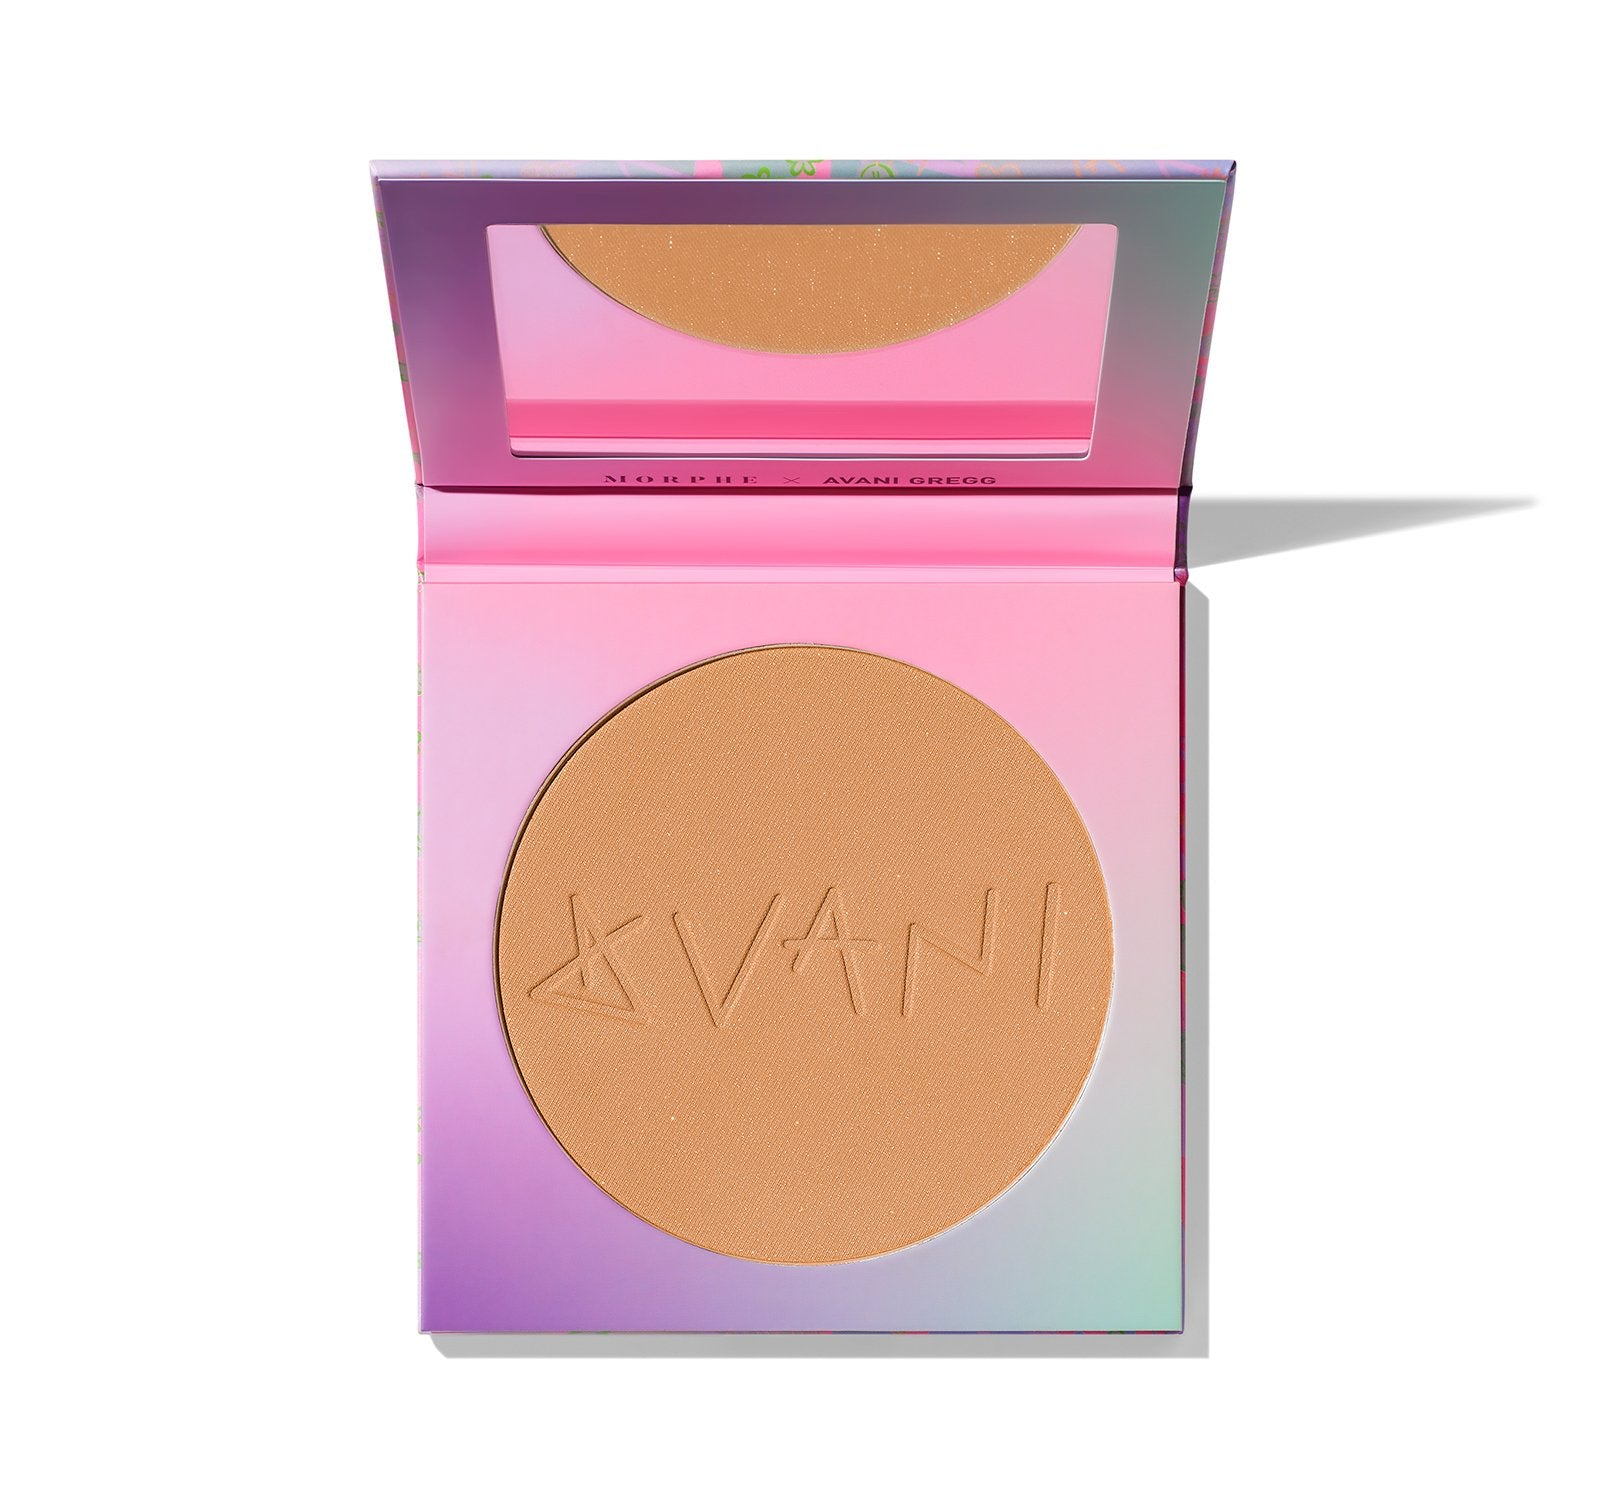 MORPHE X AVANI GREGG BAECATION LUMINOUS BRONZER - CALI, view larger image